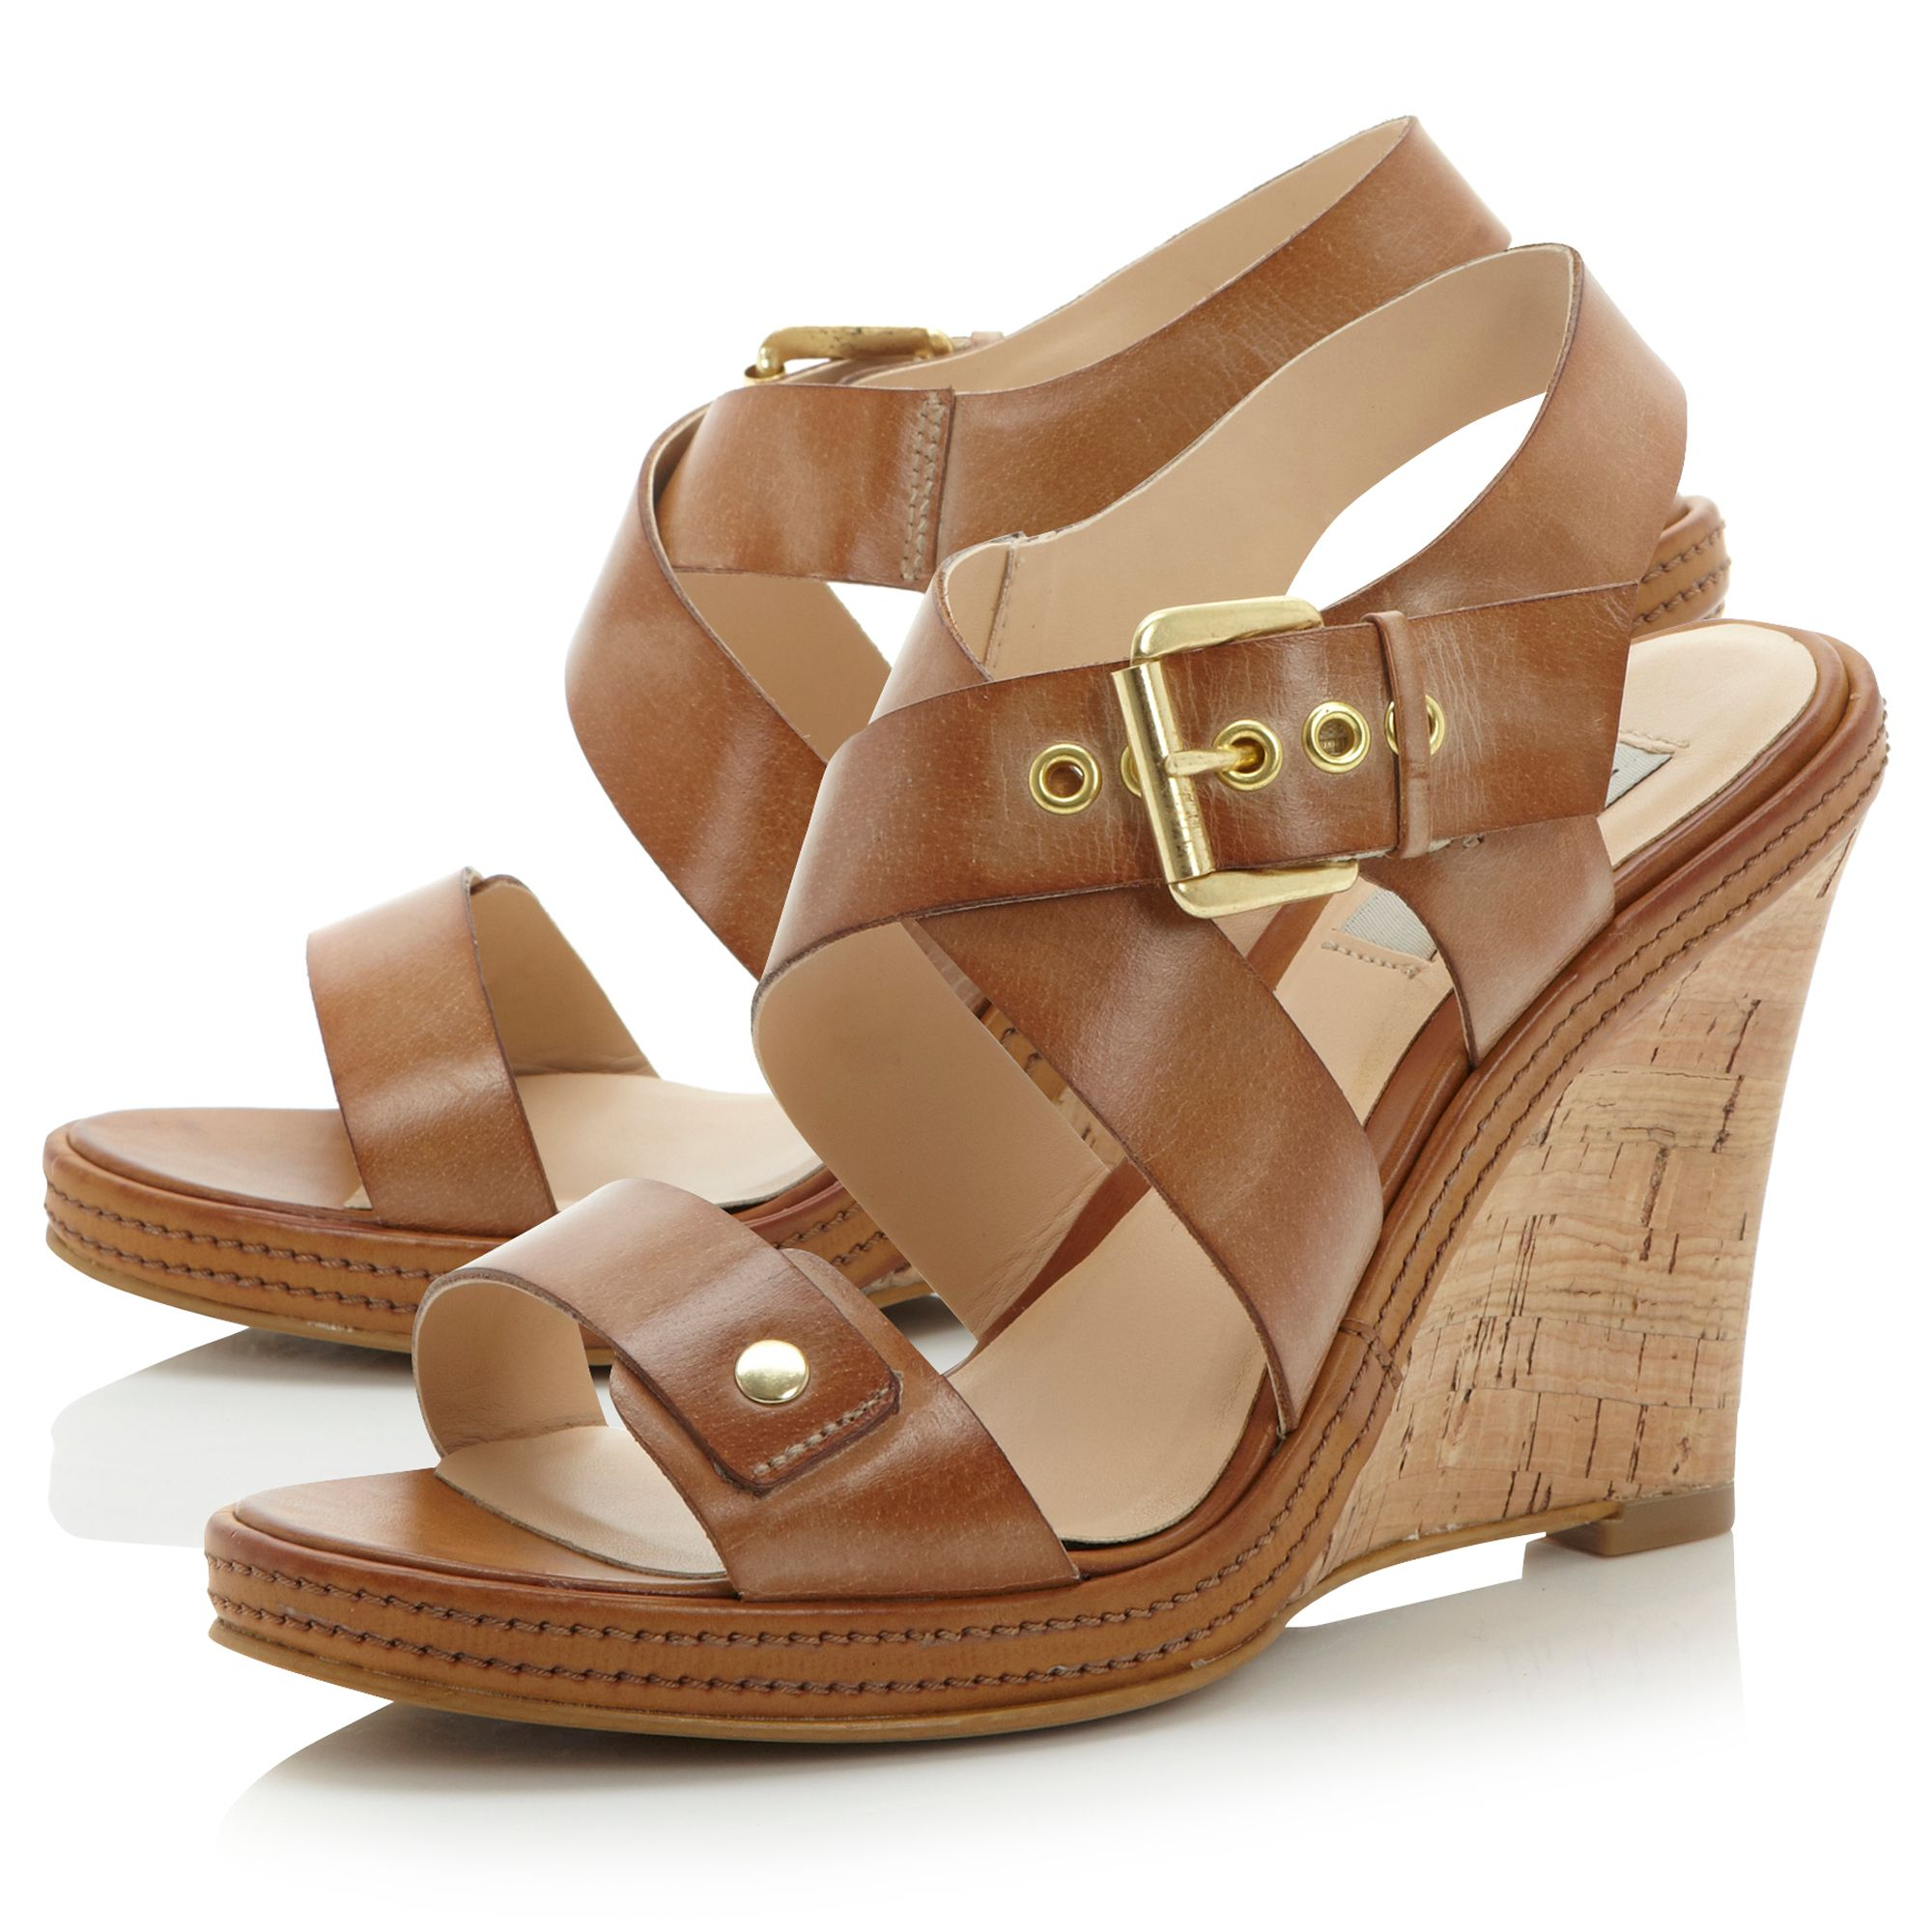 Gazella buckle wedge sandals